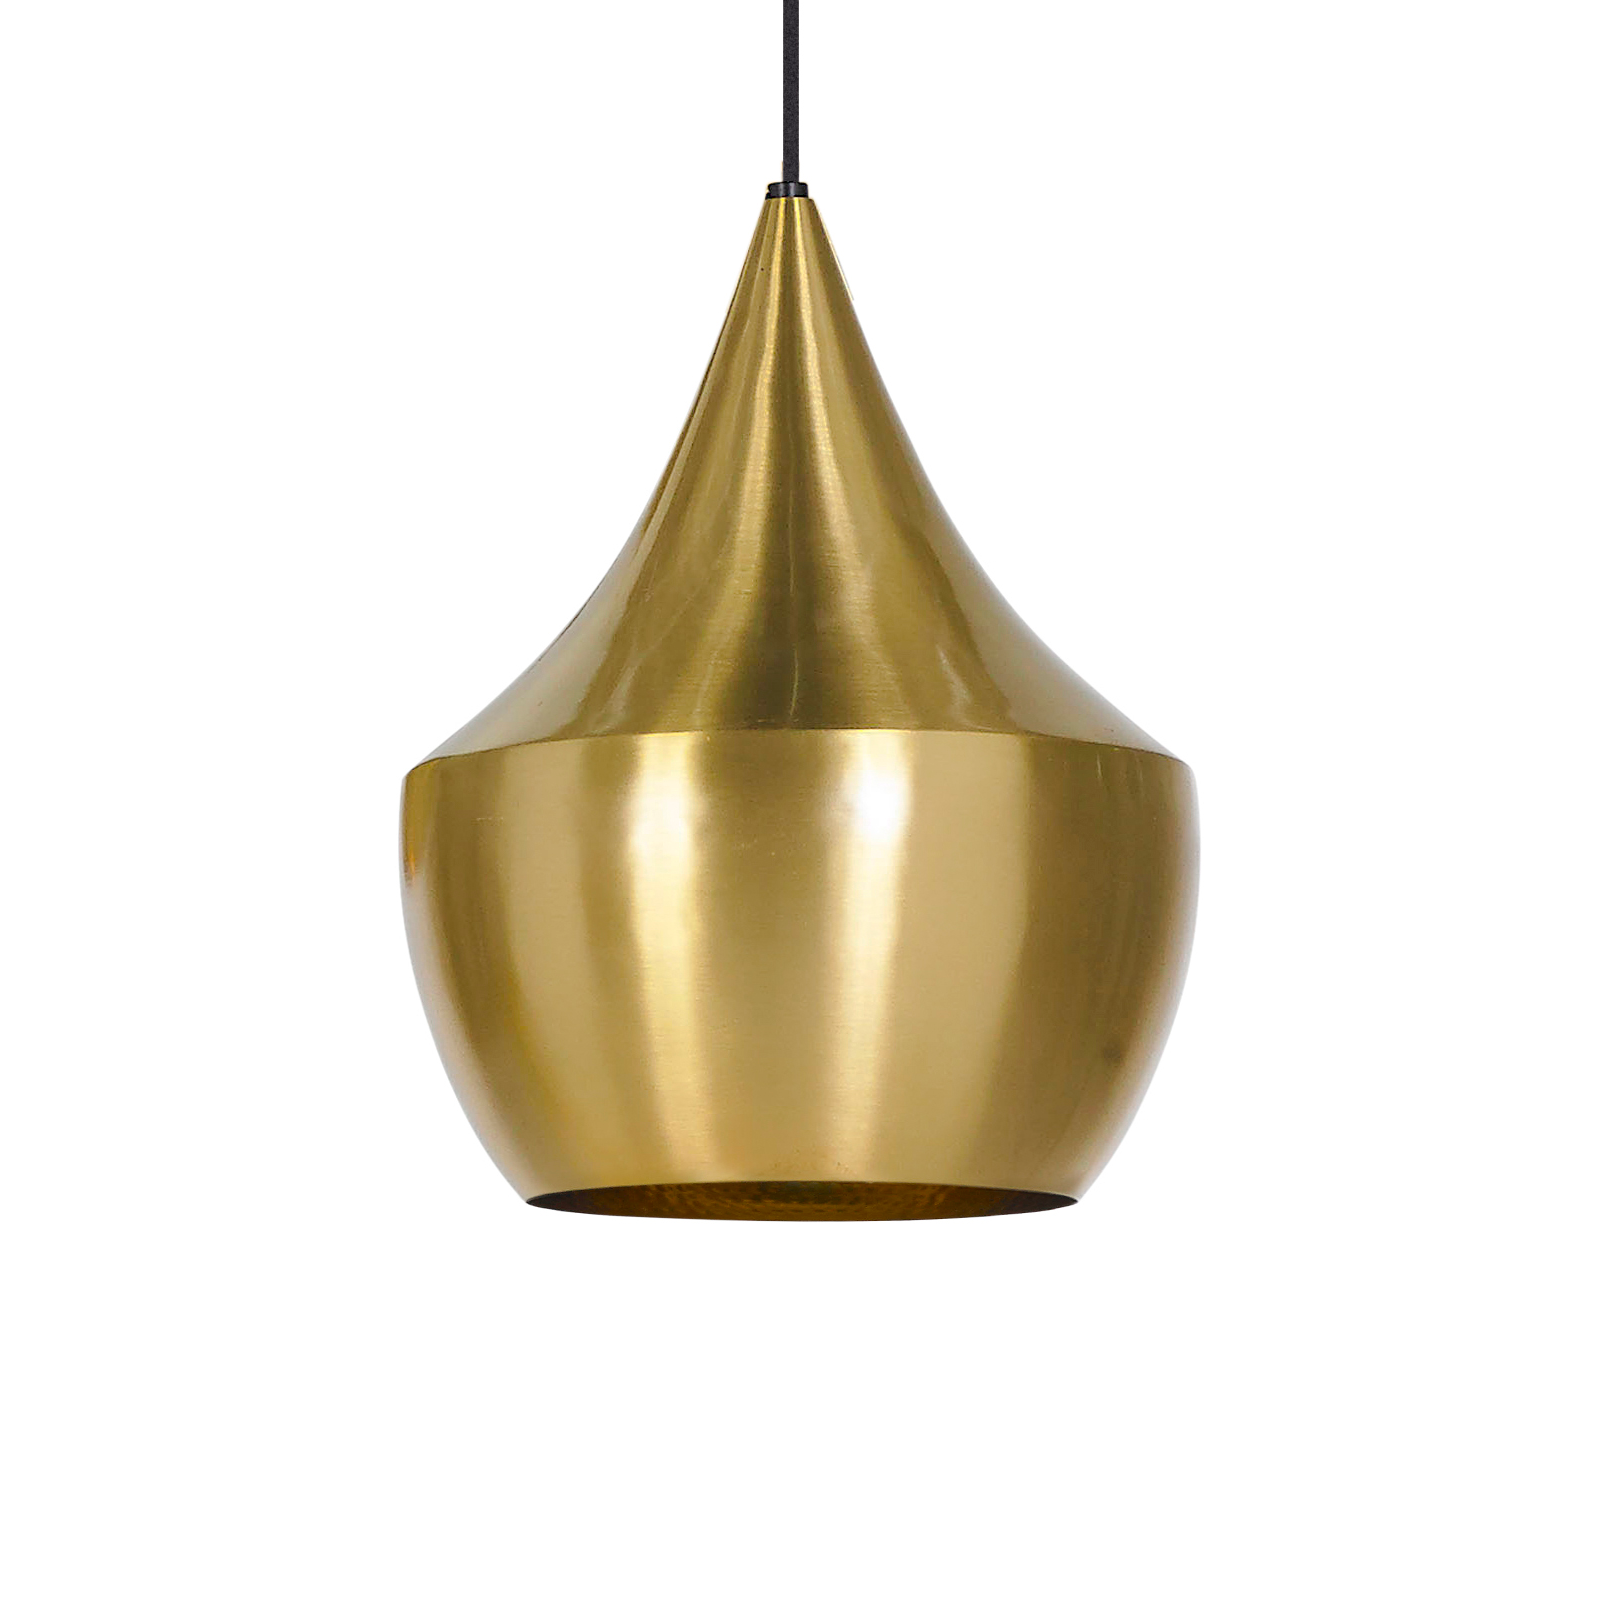 Tom Dixon Beat Brass Light Series Suspension Lamp 銅澤 吊燈